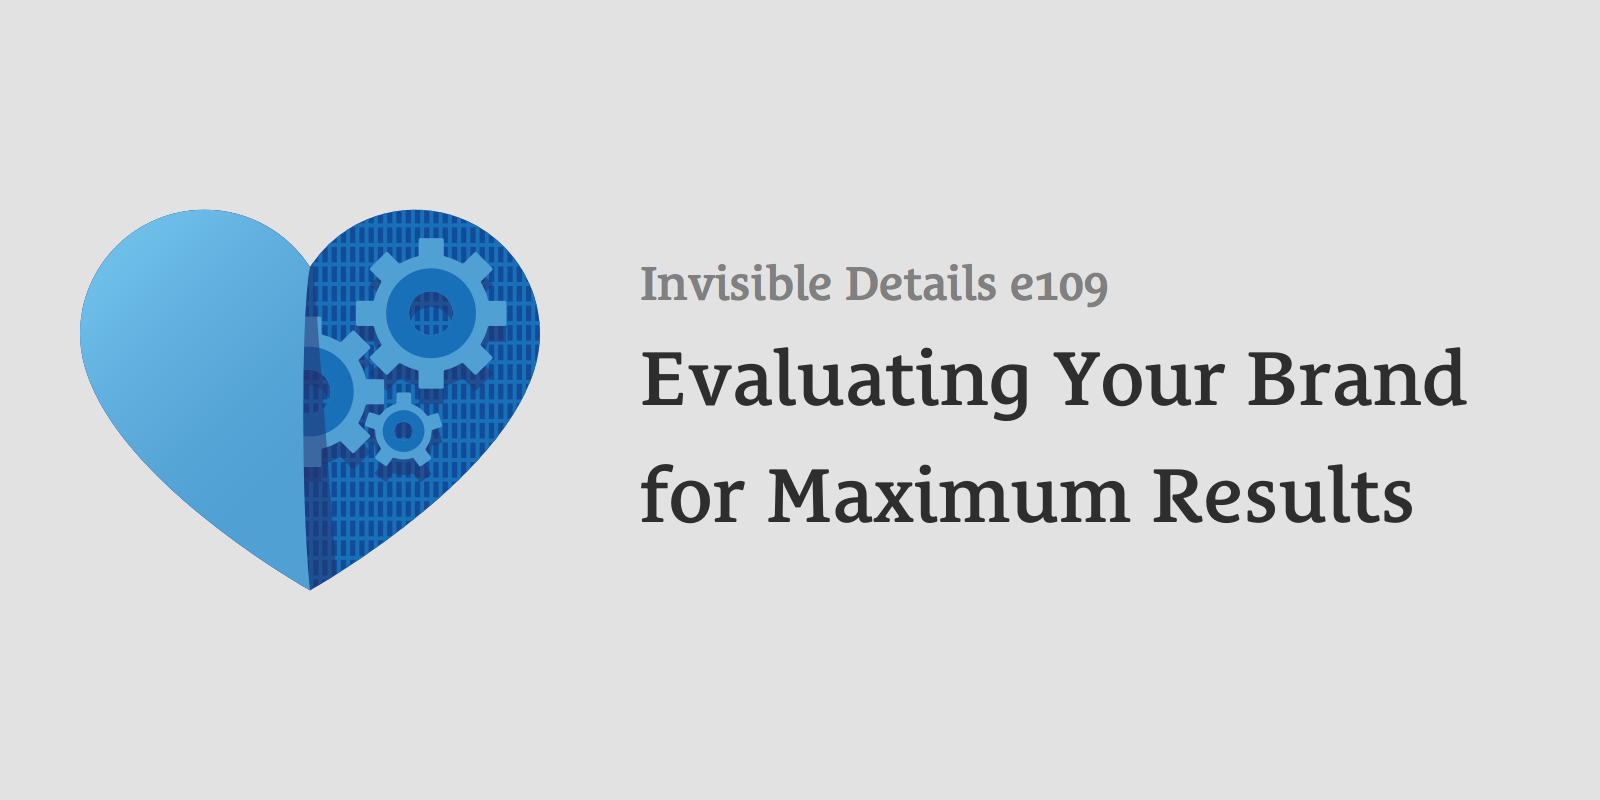 Evaluating Your Brand for Maximum Results